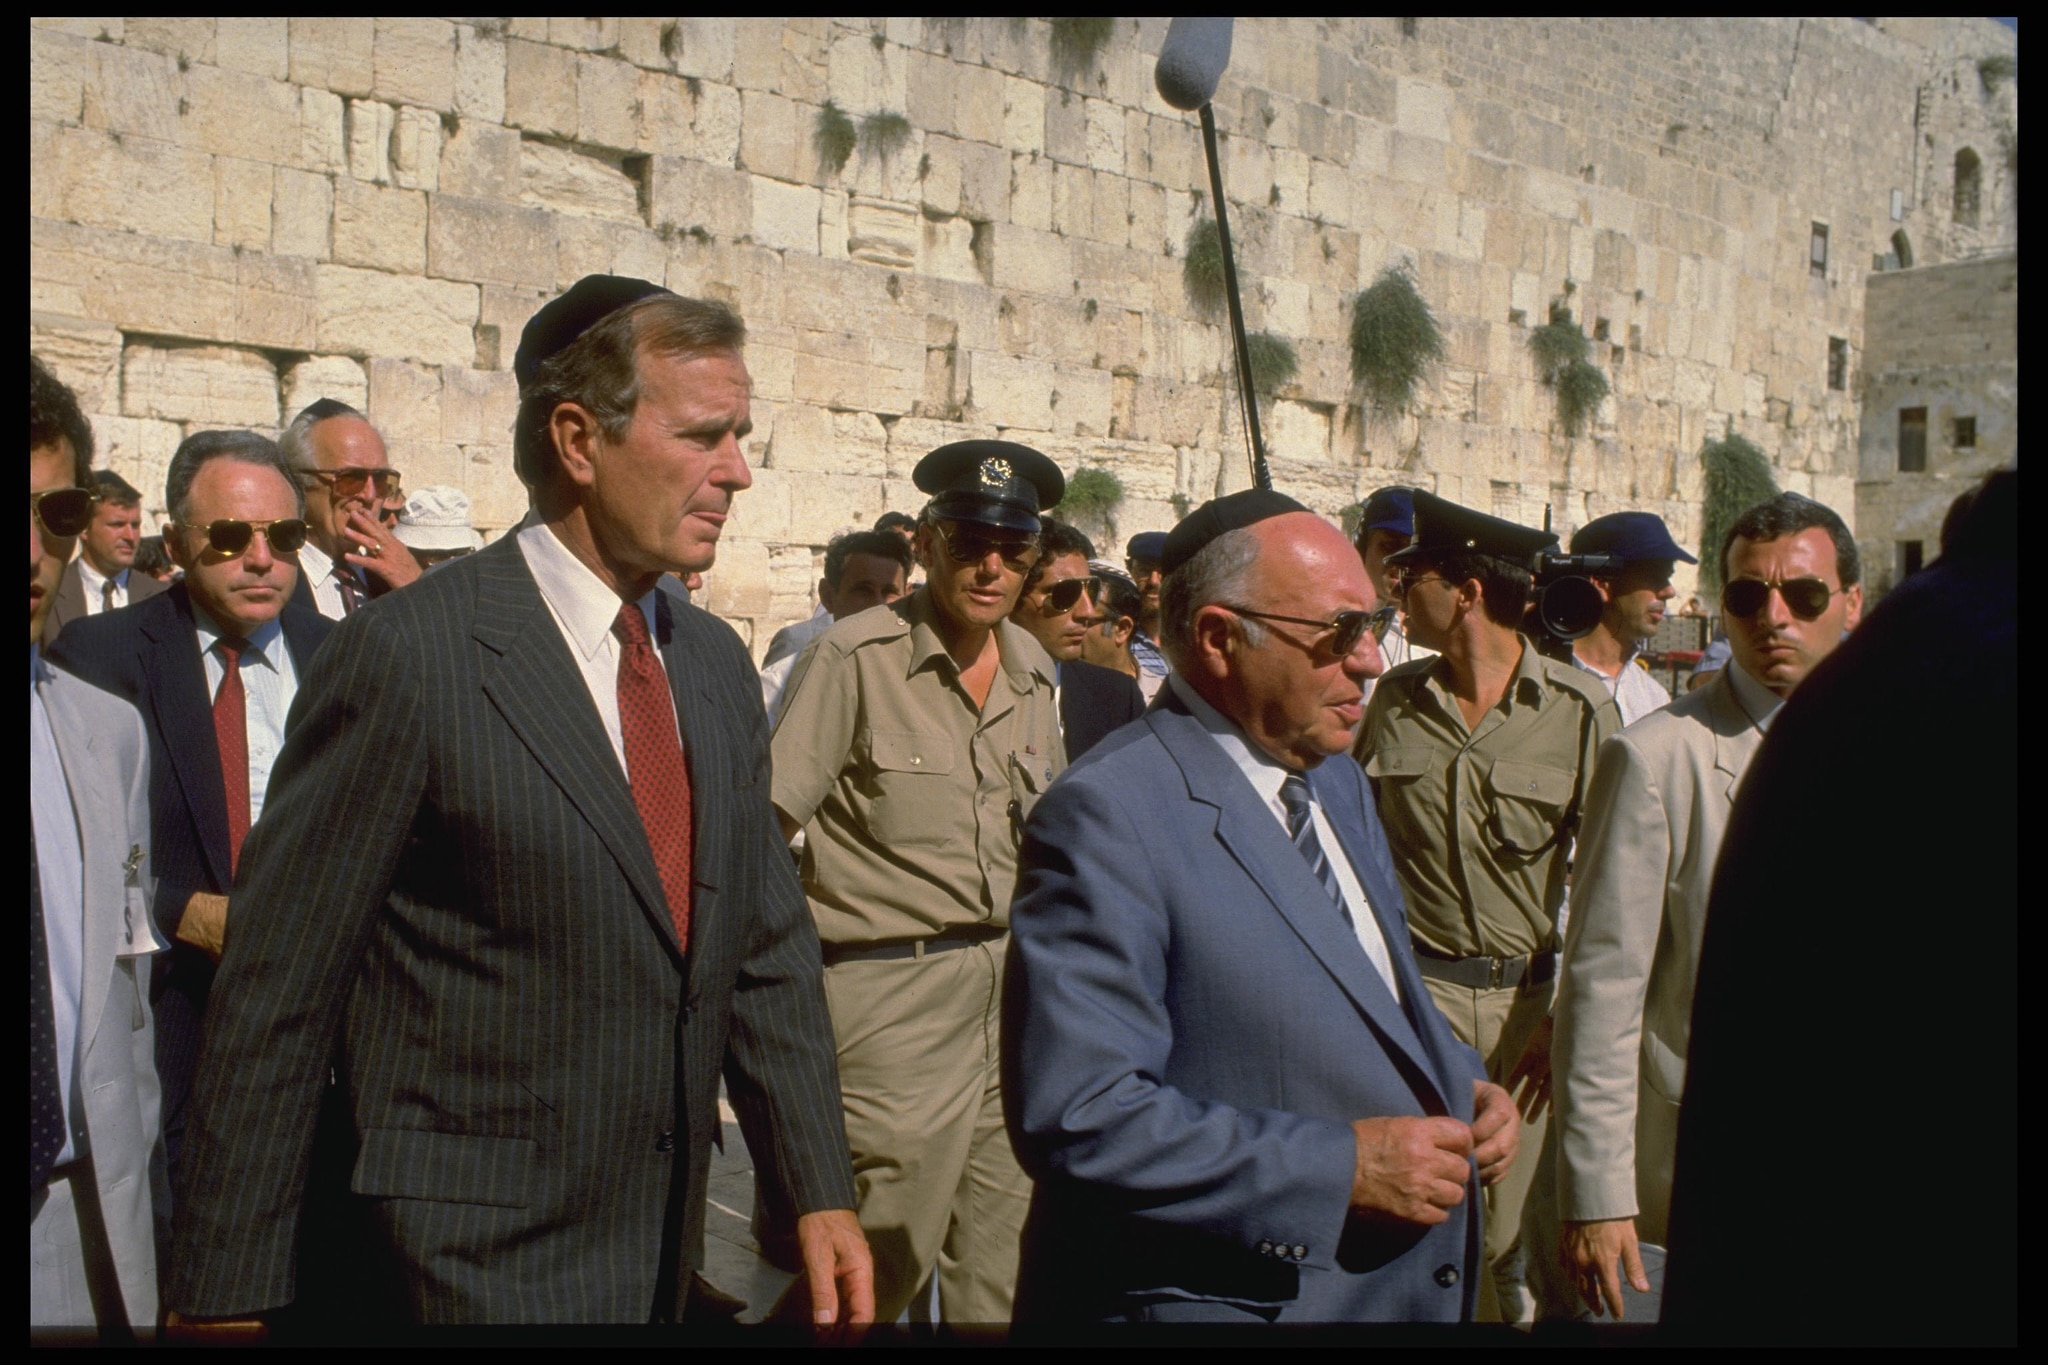 President George H.W. Bush and others at the Western Wall (State Dept.)